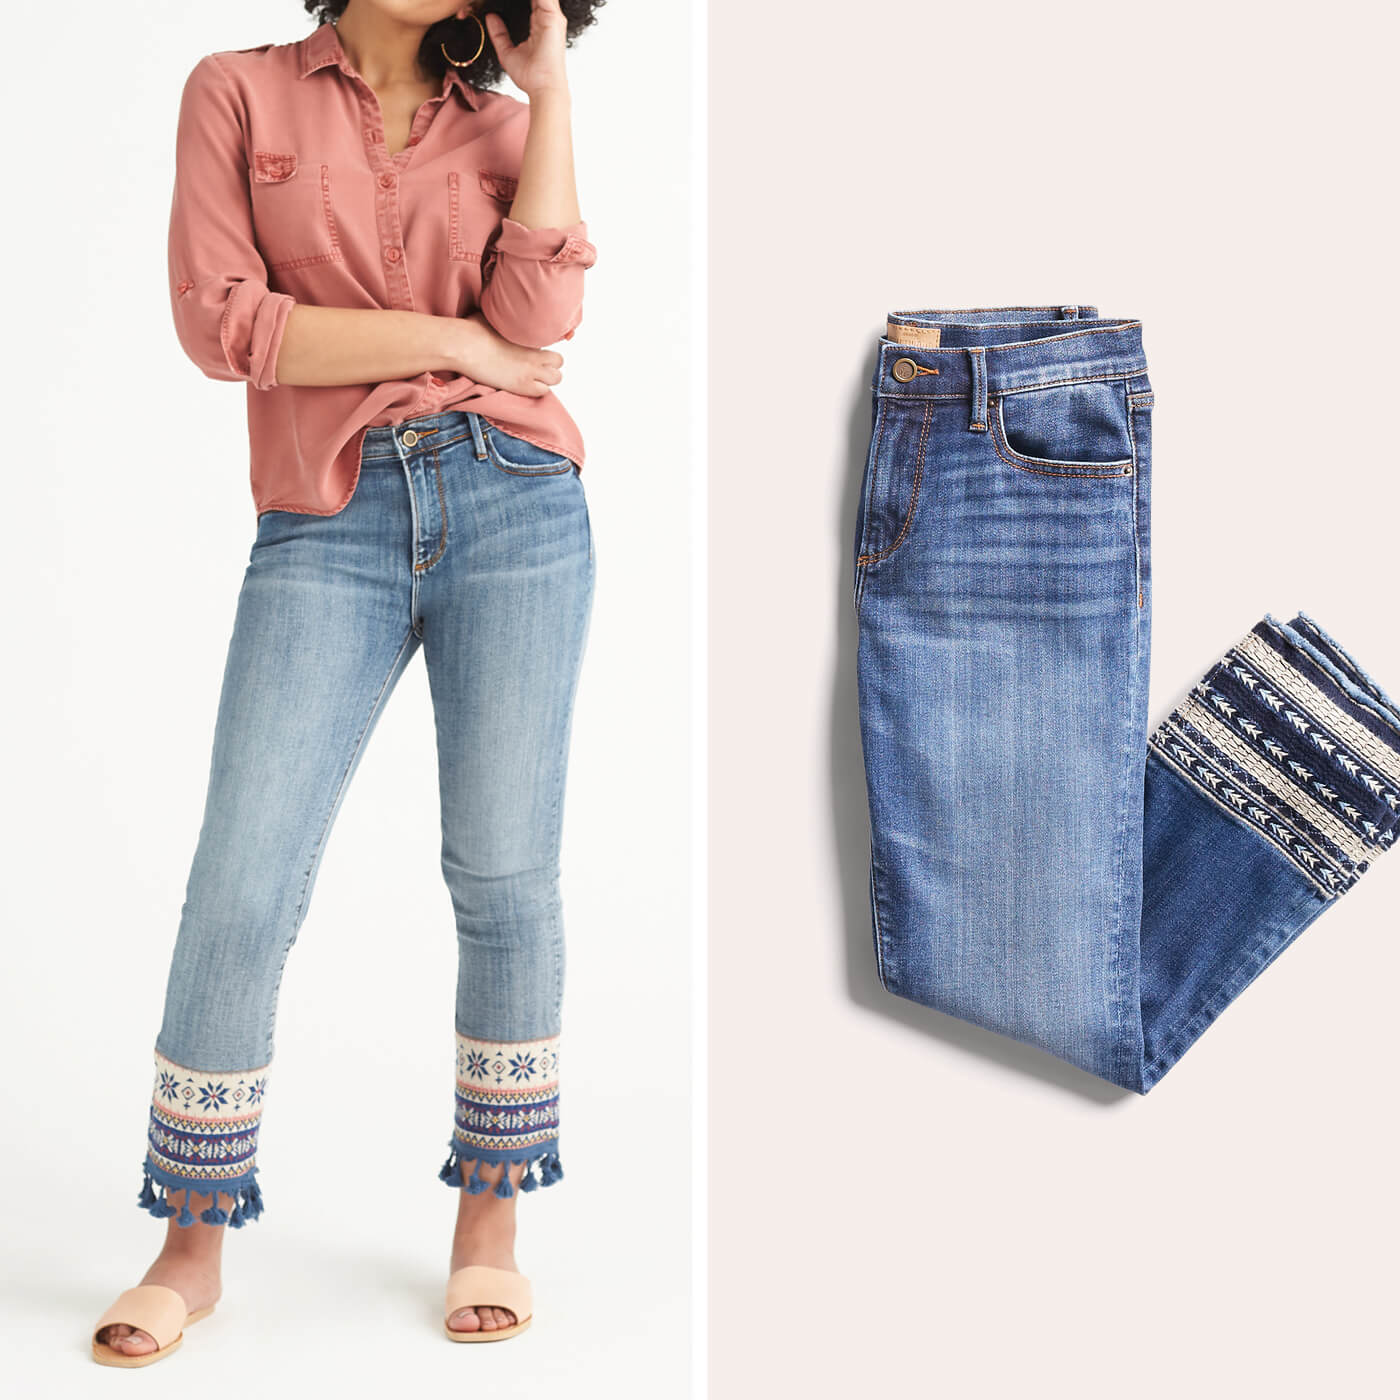 The Petite Girl's Guide to Denim